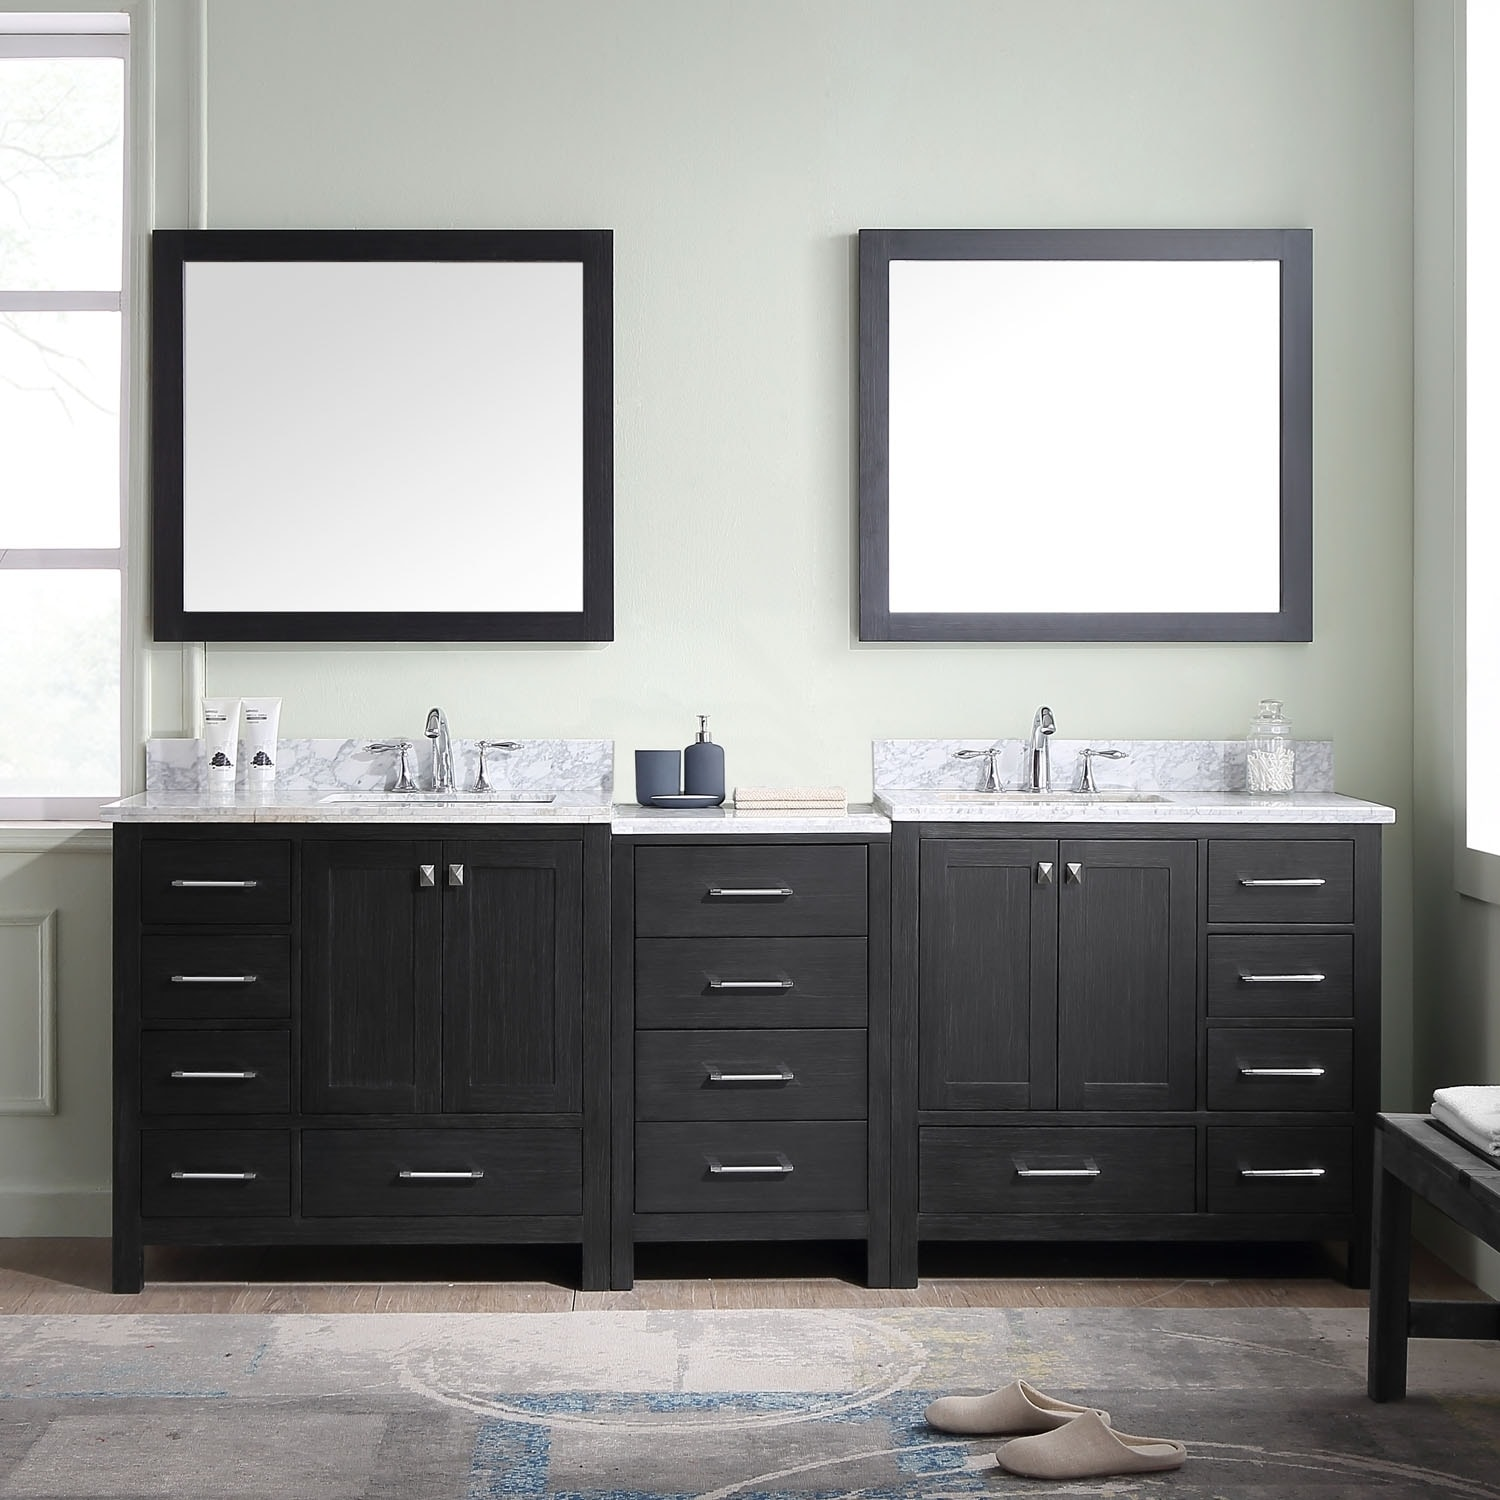 Charmant Shop Virtu USA Caroline Premium 90 Inch Double Bathroom Vanity Set   Free  Shipping Today   Overstock.com   17285653